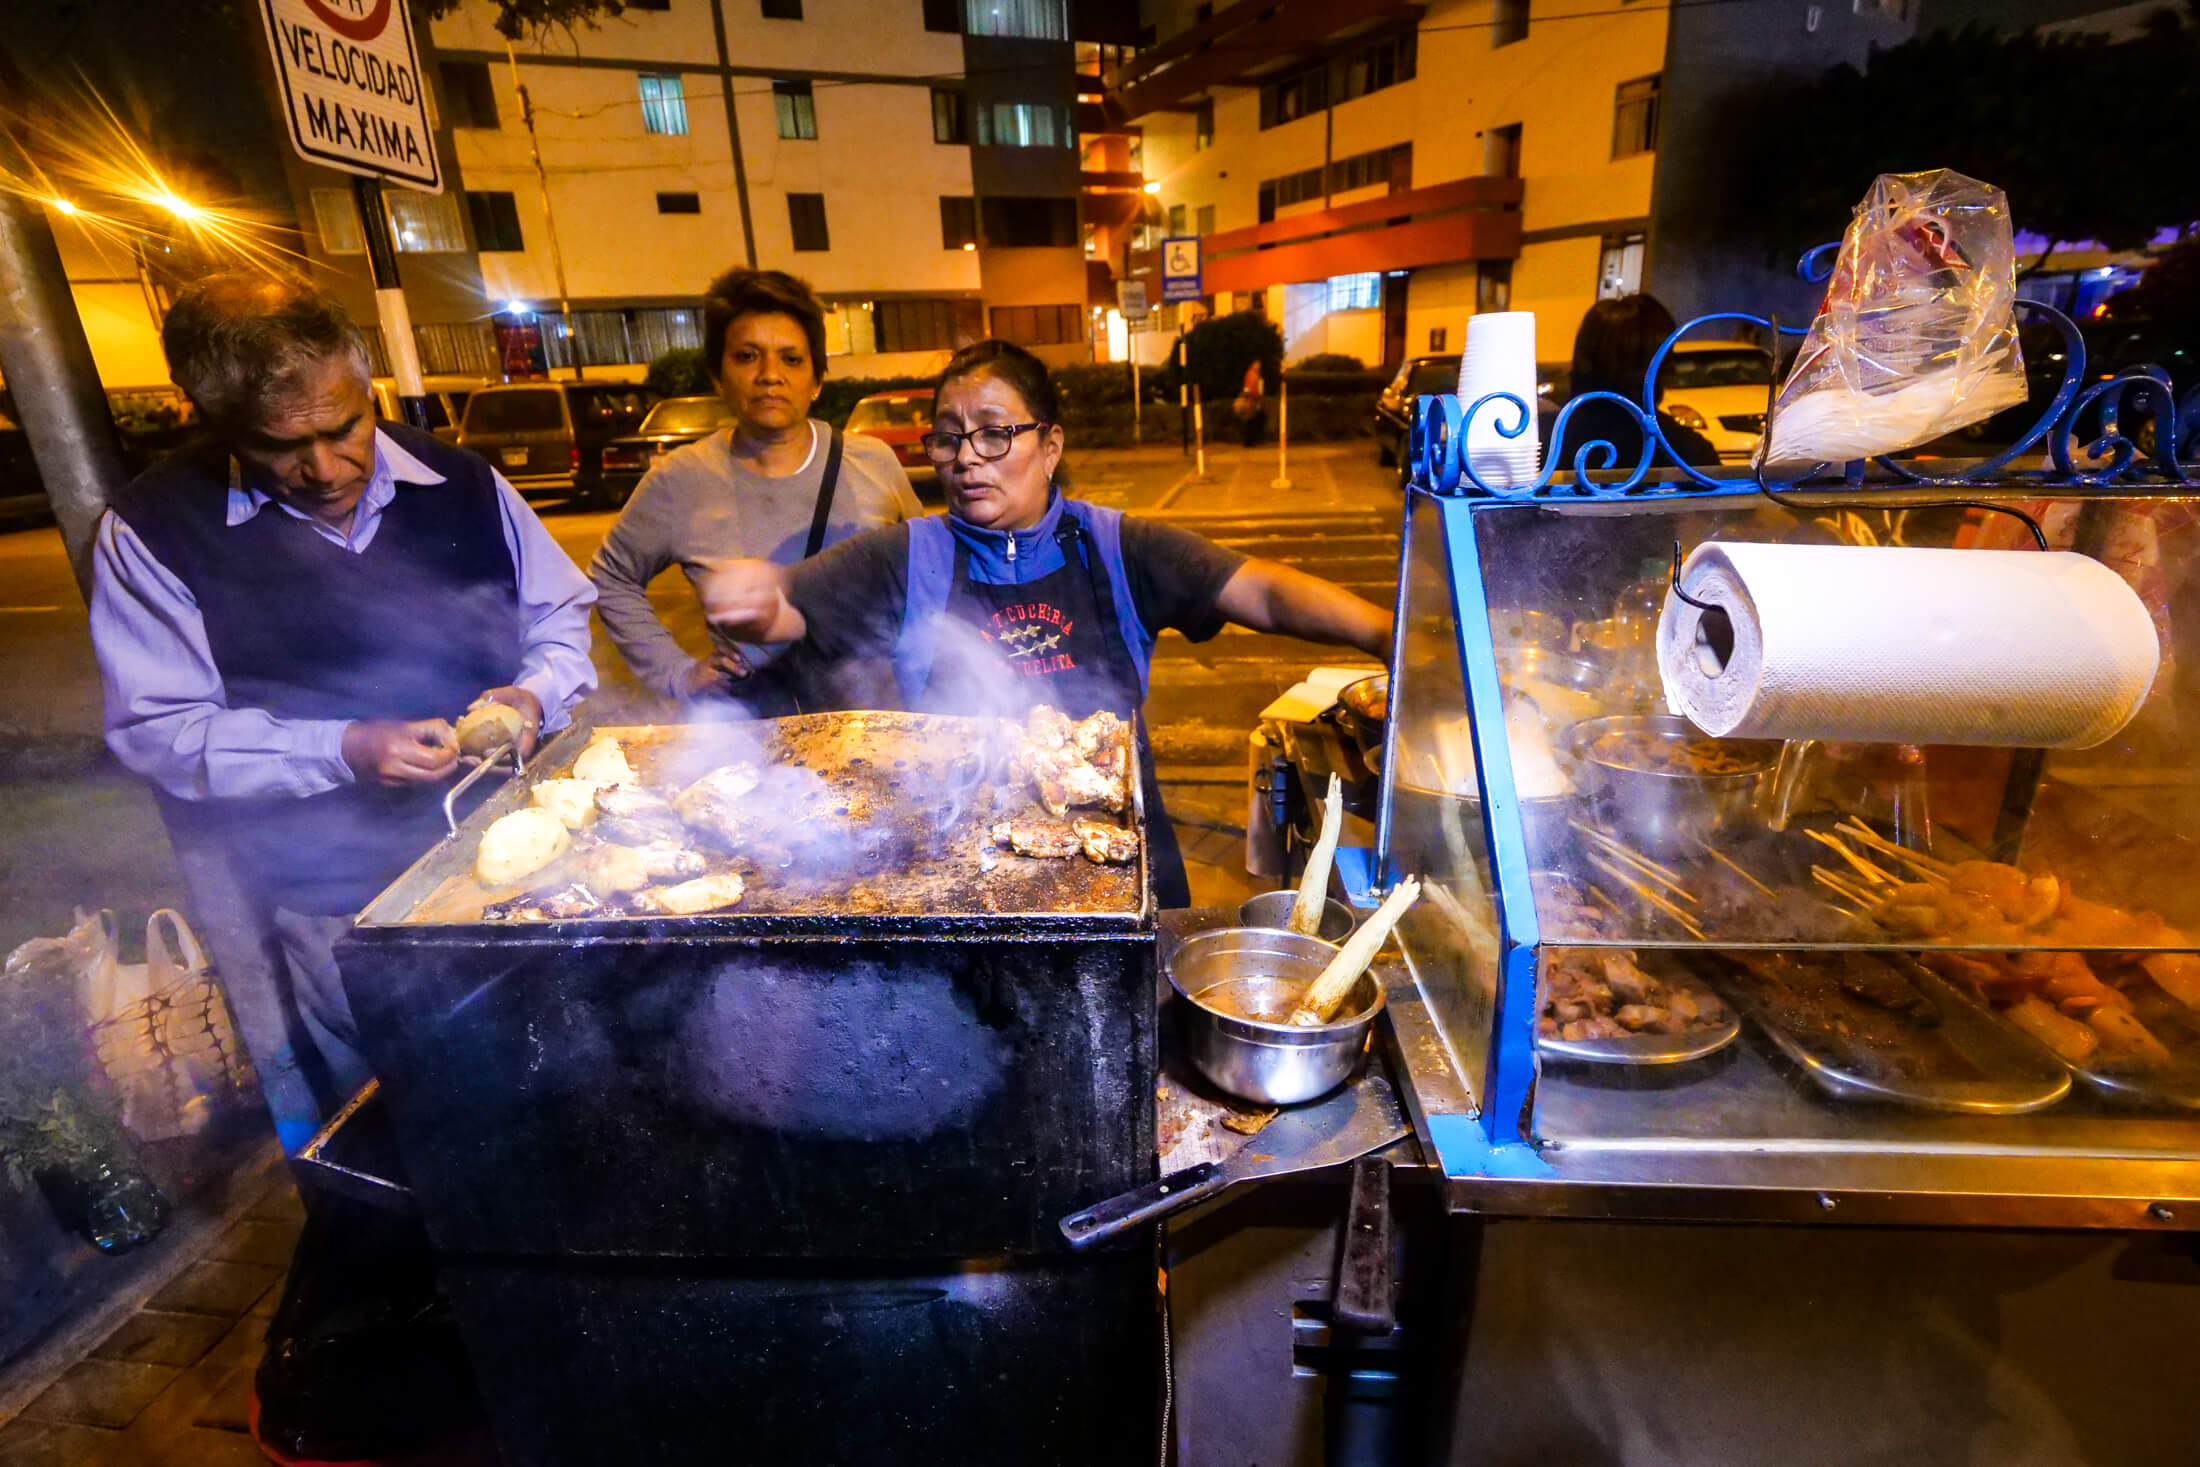 These Beef Skewers are a treasure of Miraflores (part of Lima, in Peru)